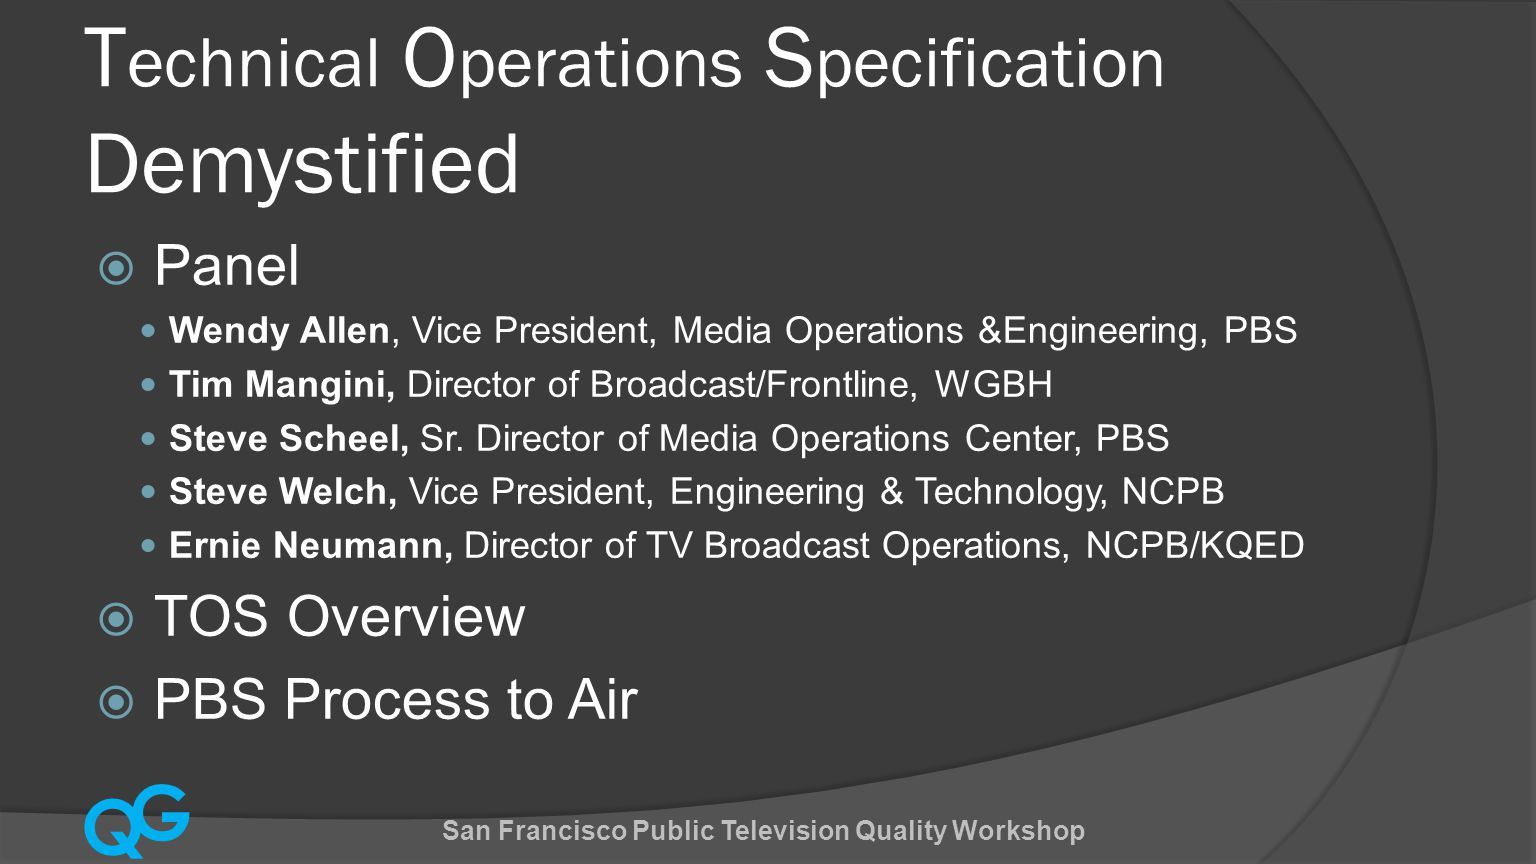 Q G TOS Overview  1970 - Interconnection System was established  Need for common operations -- led to PBS establishing technical guidelines.